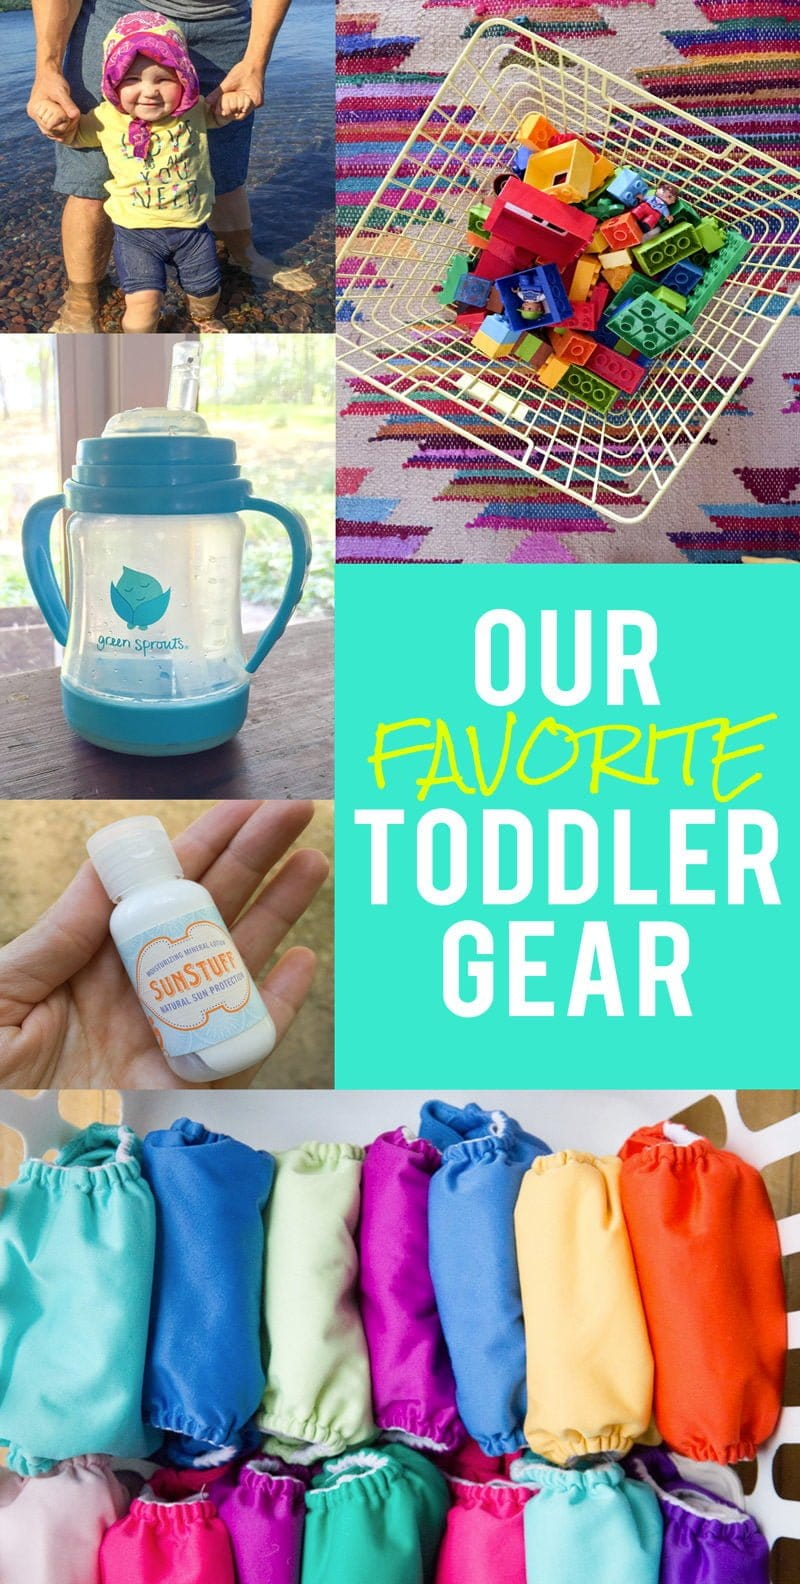 Our Favorite Toddler Gear